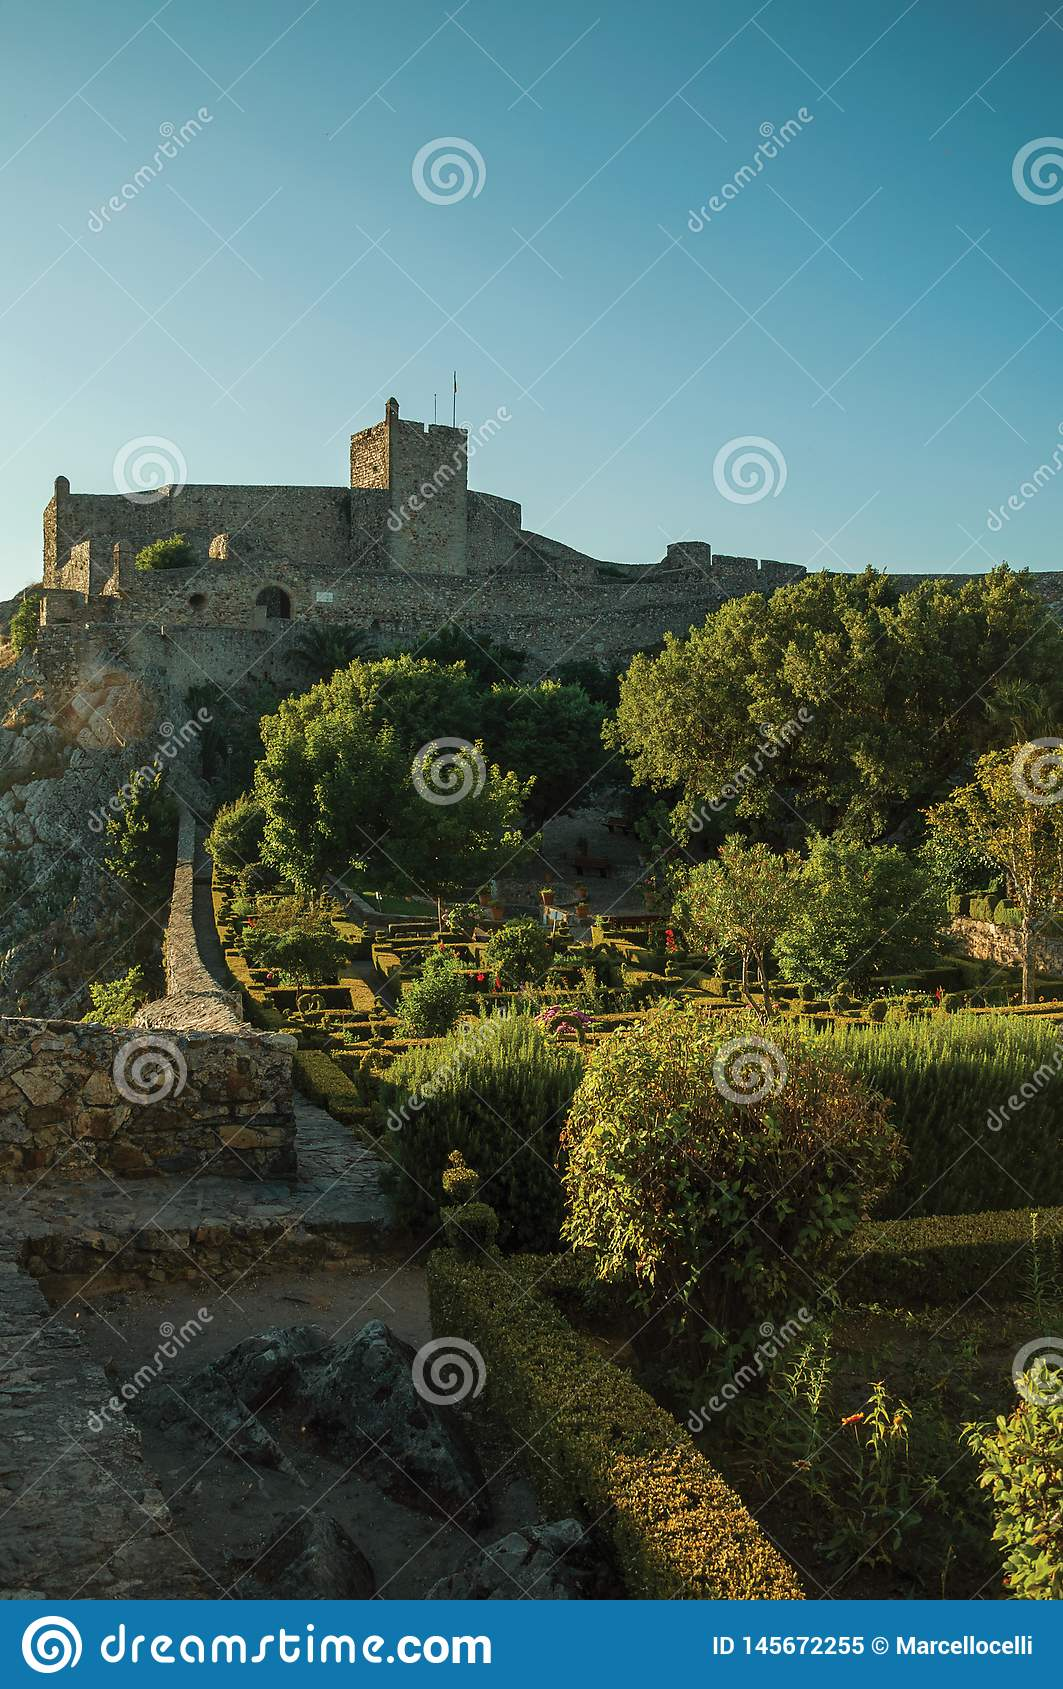 Stone walls and tower of Castle with lush flowered garden